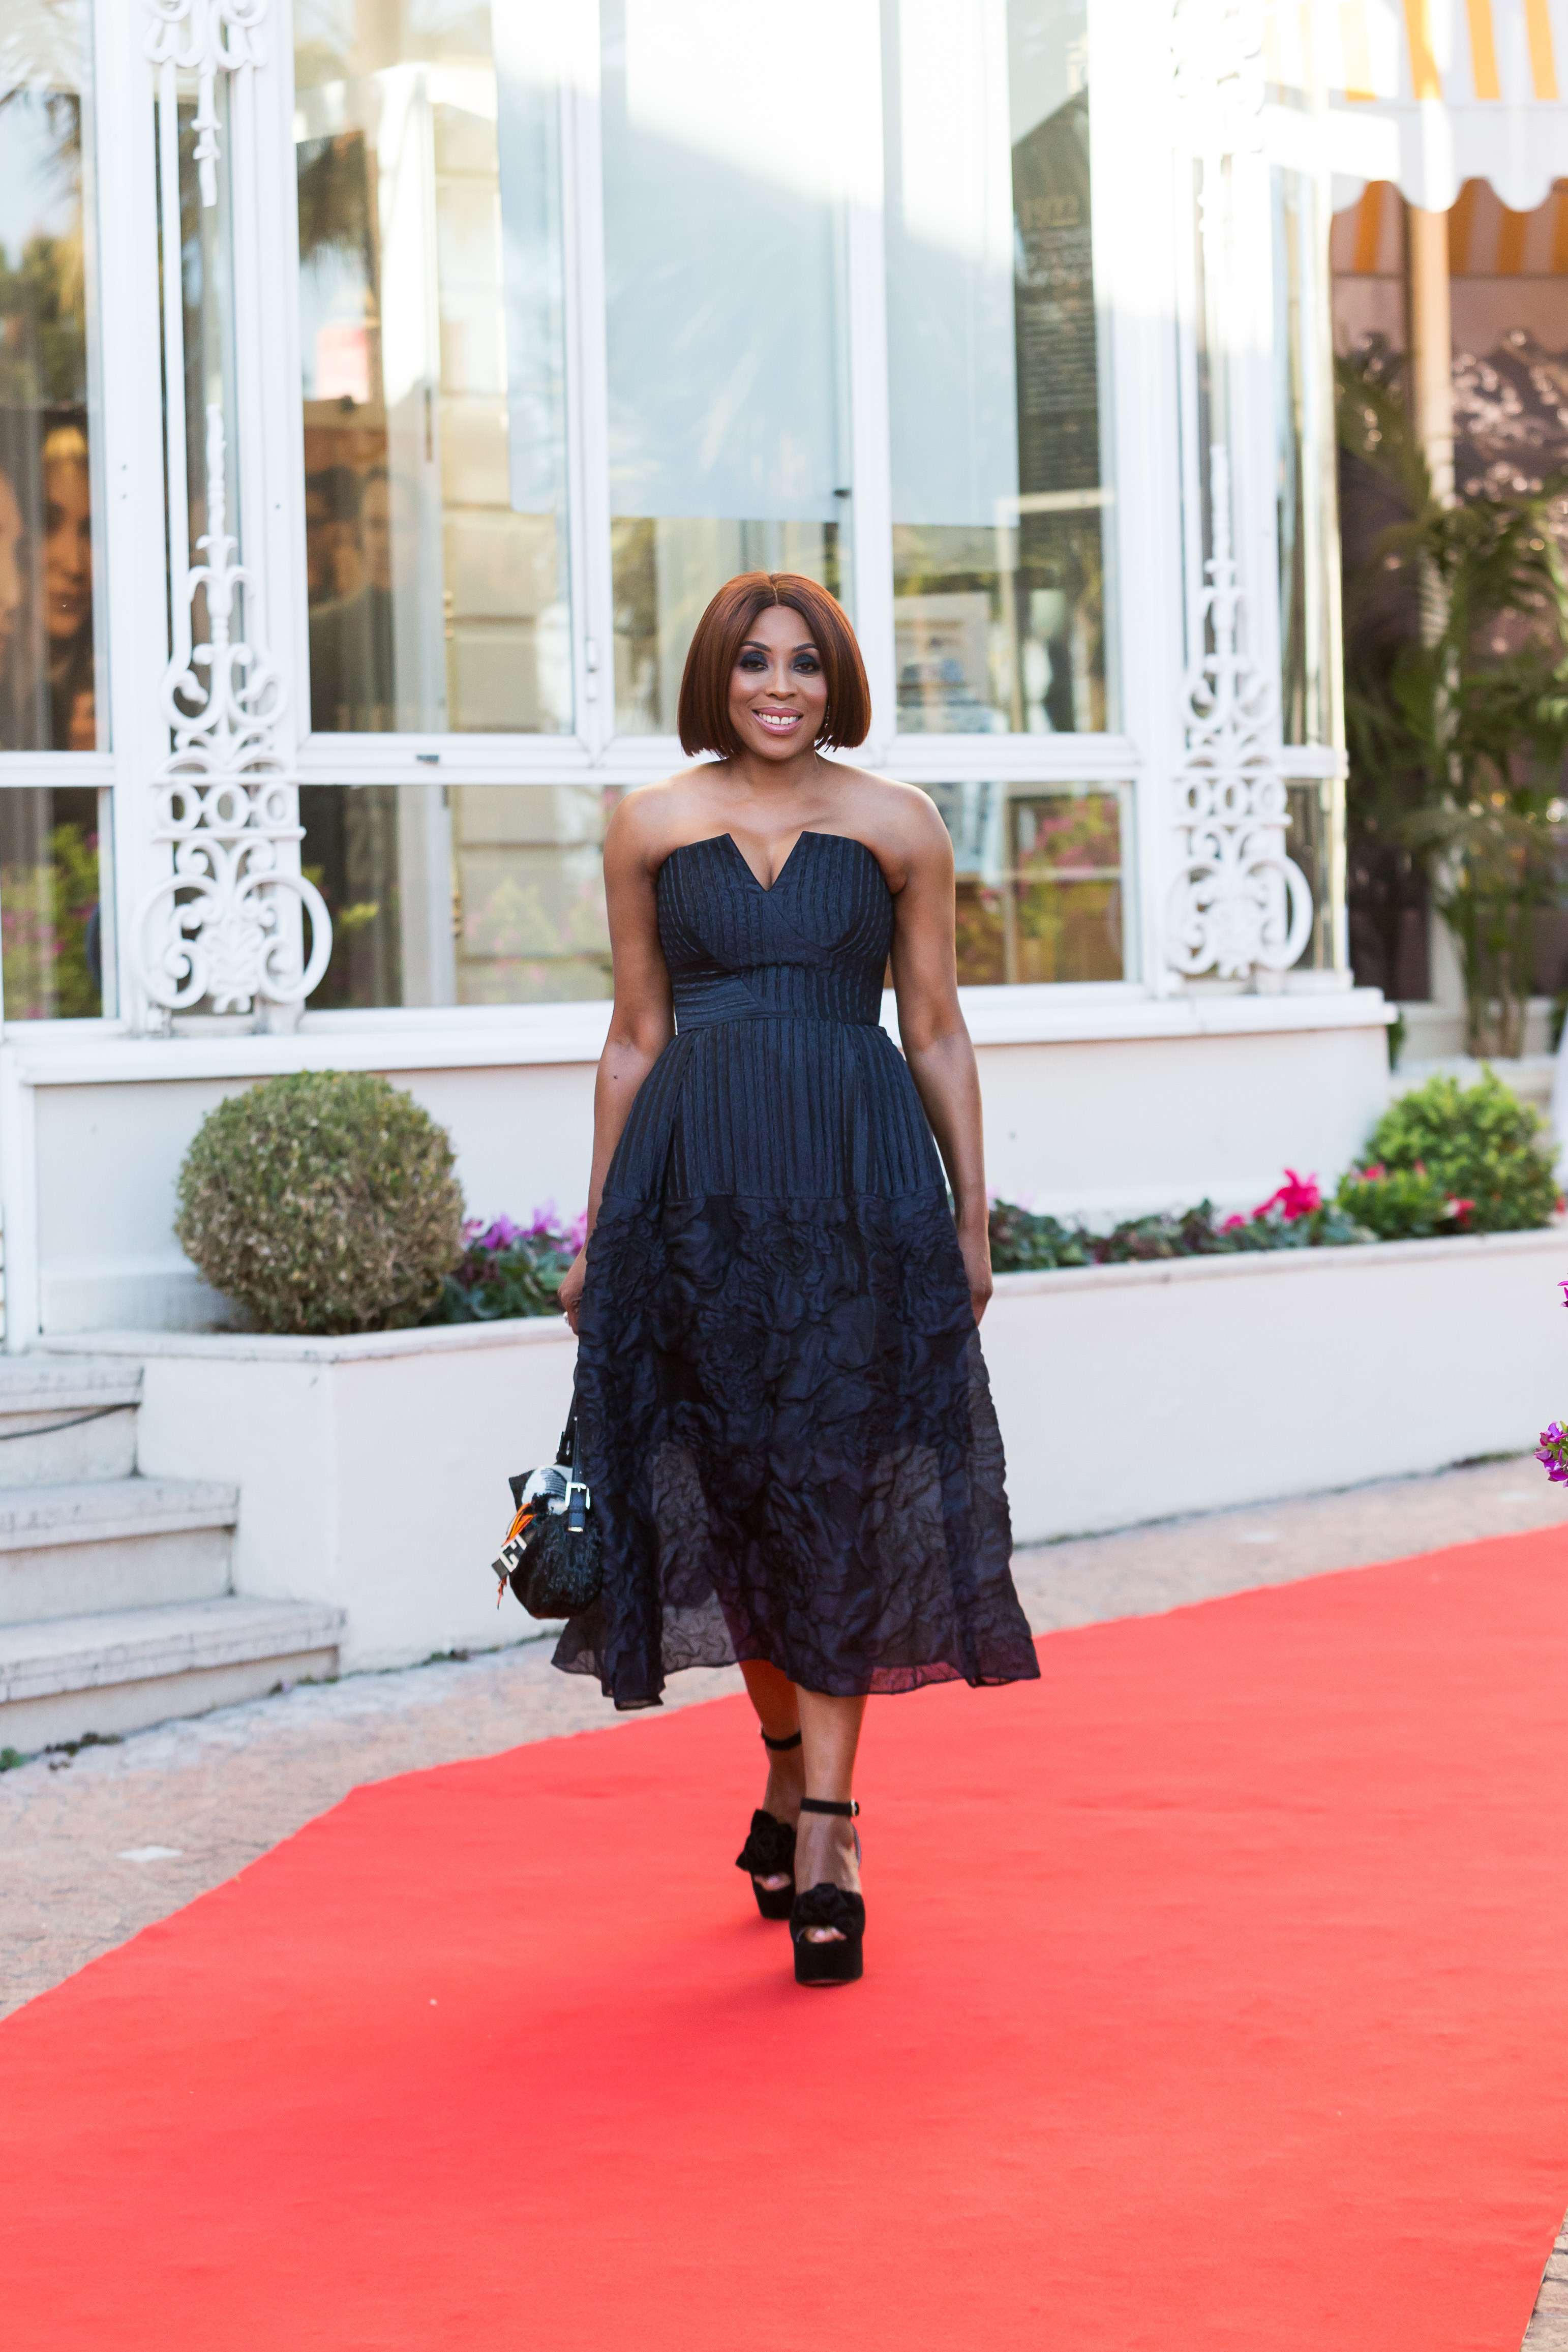 Nigerian media mogul Mo Abudu receives 2019 M?dailles d?Honneur at MIPtv in Cannes